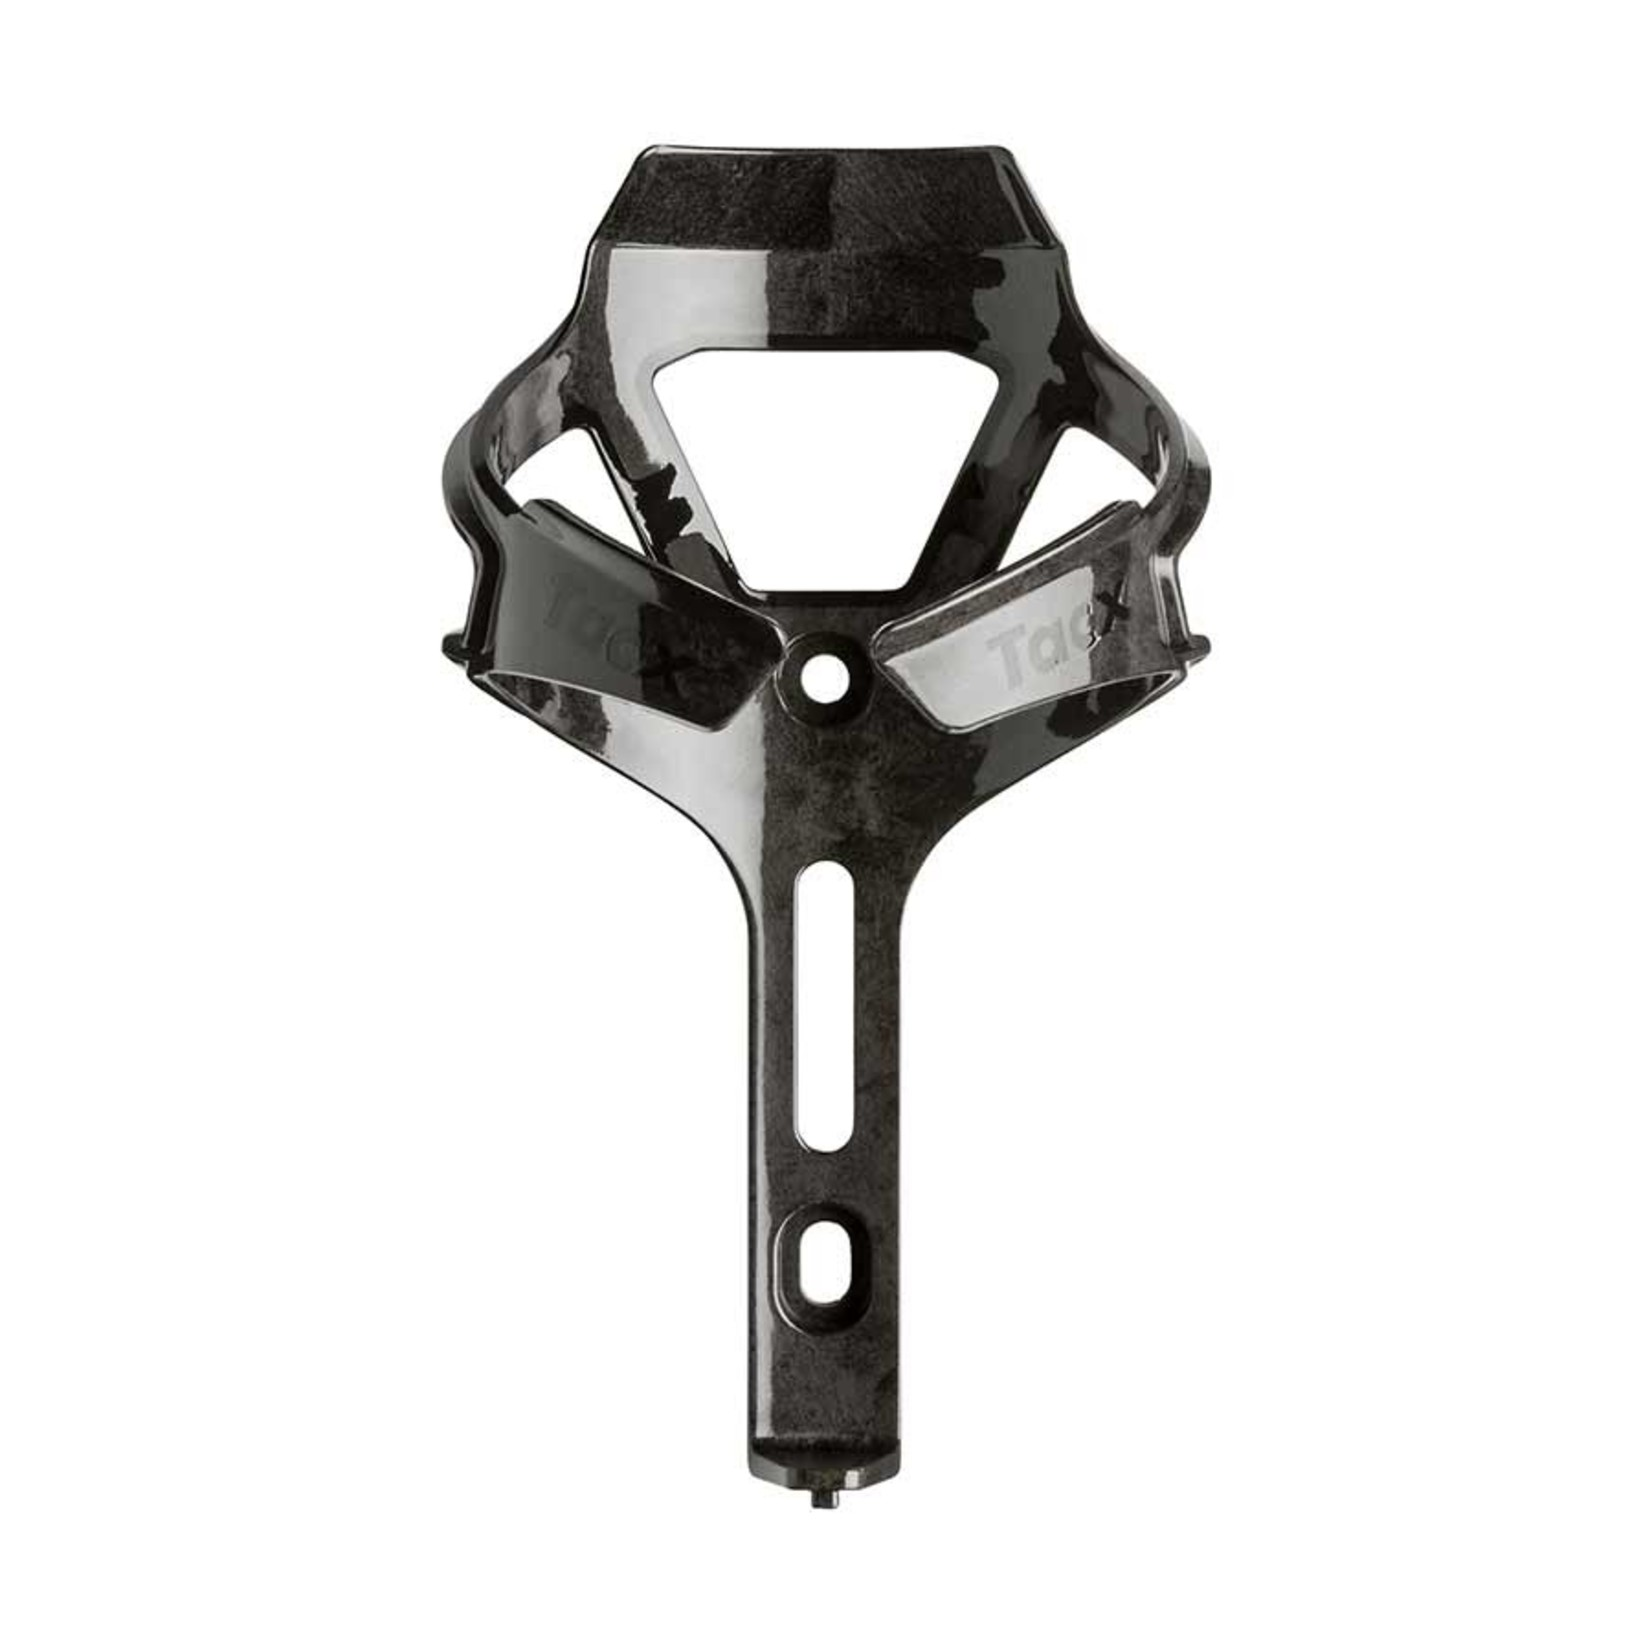 Tacx Tacx Bottle Cage Ciro